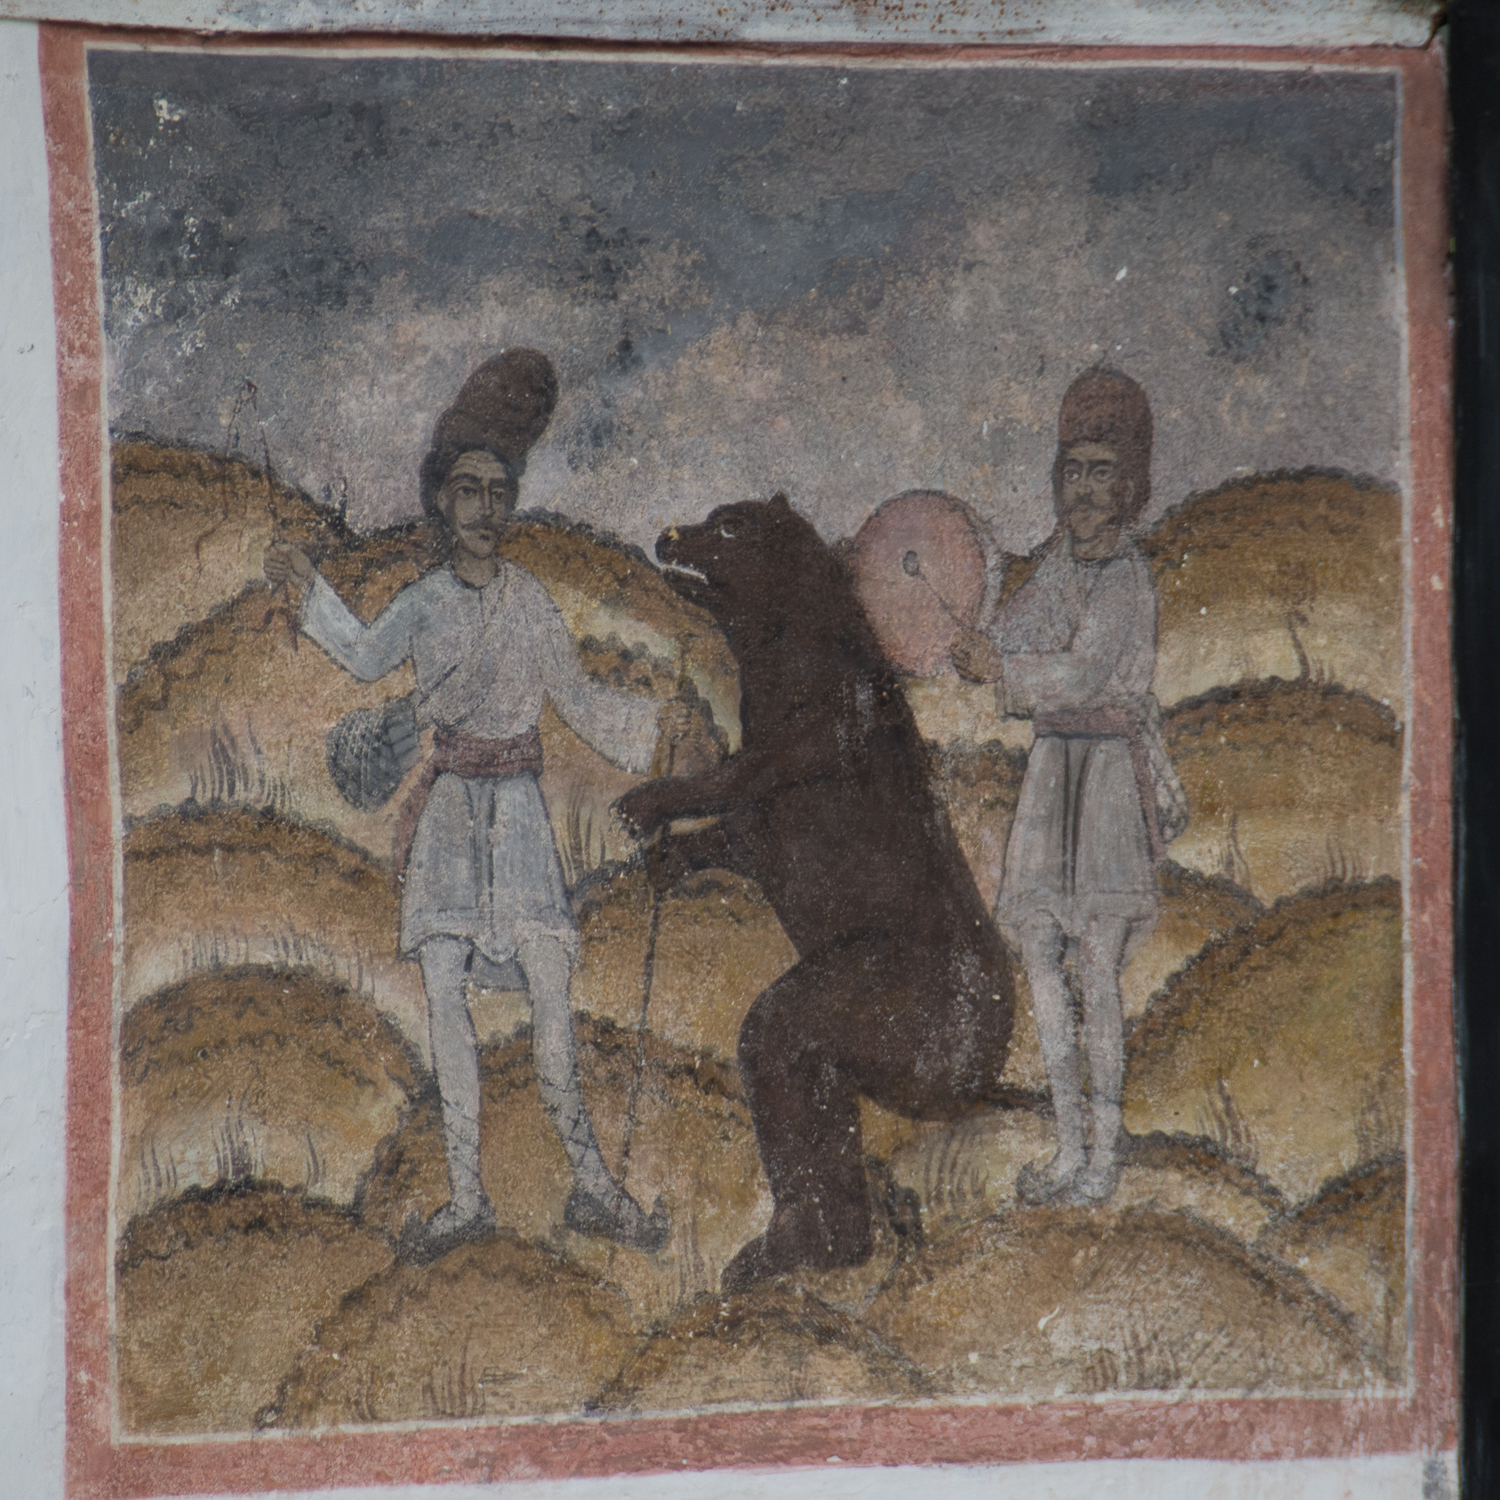 Two men and a bear